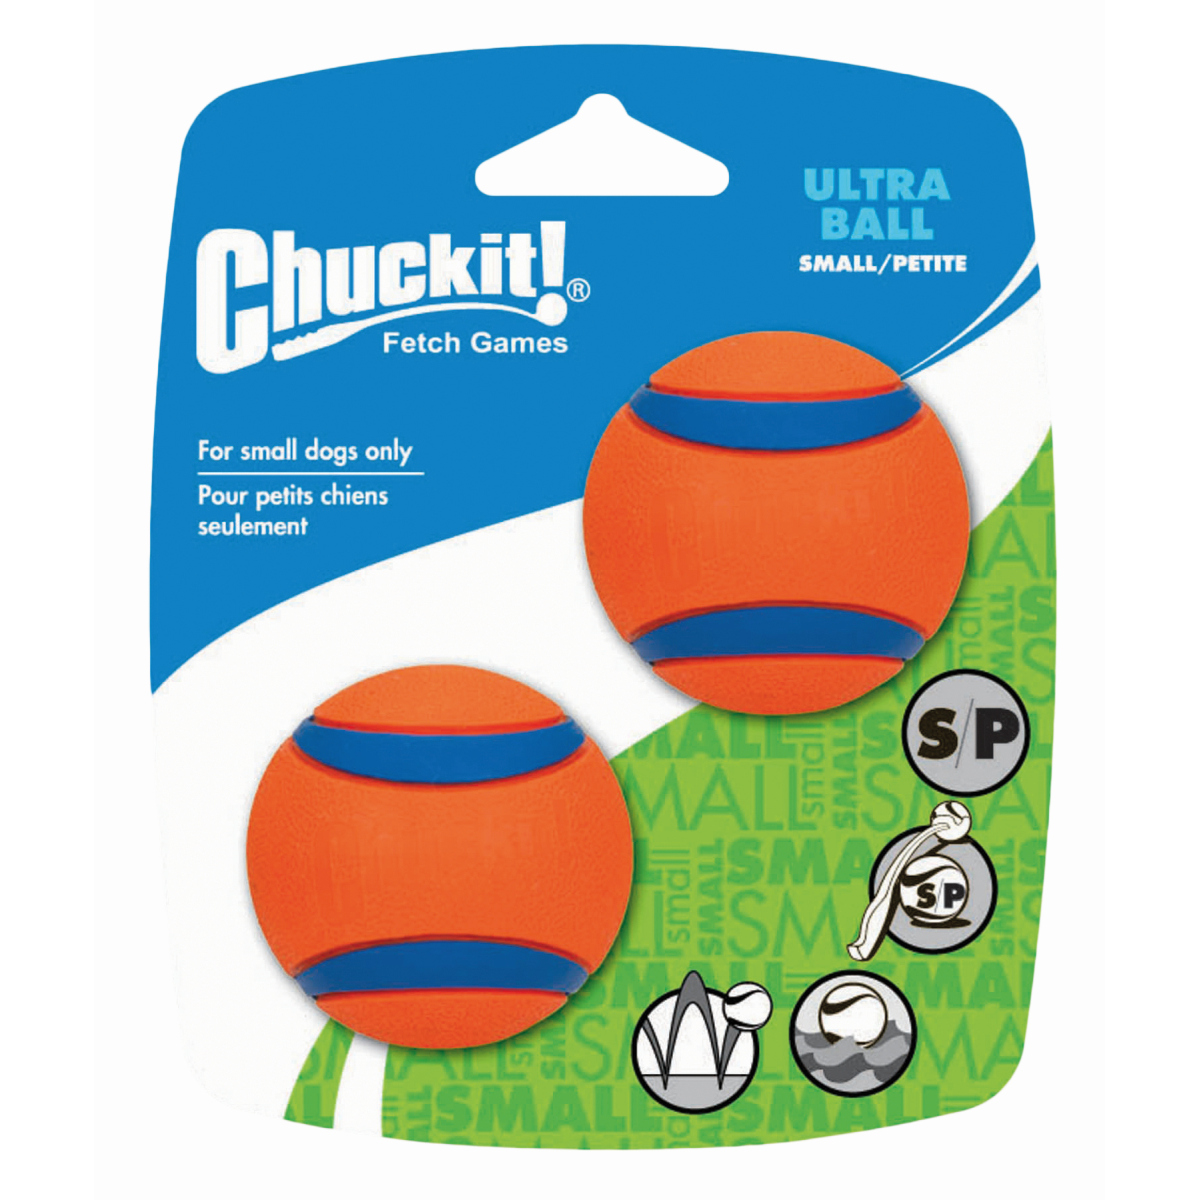 CI ULTRA BALL SMALL 2-PACK 00001